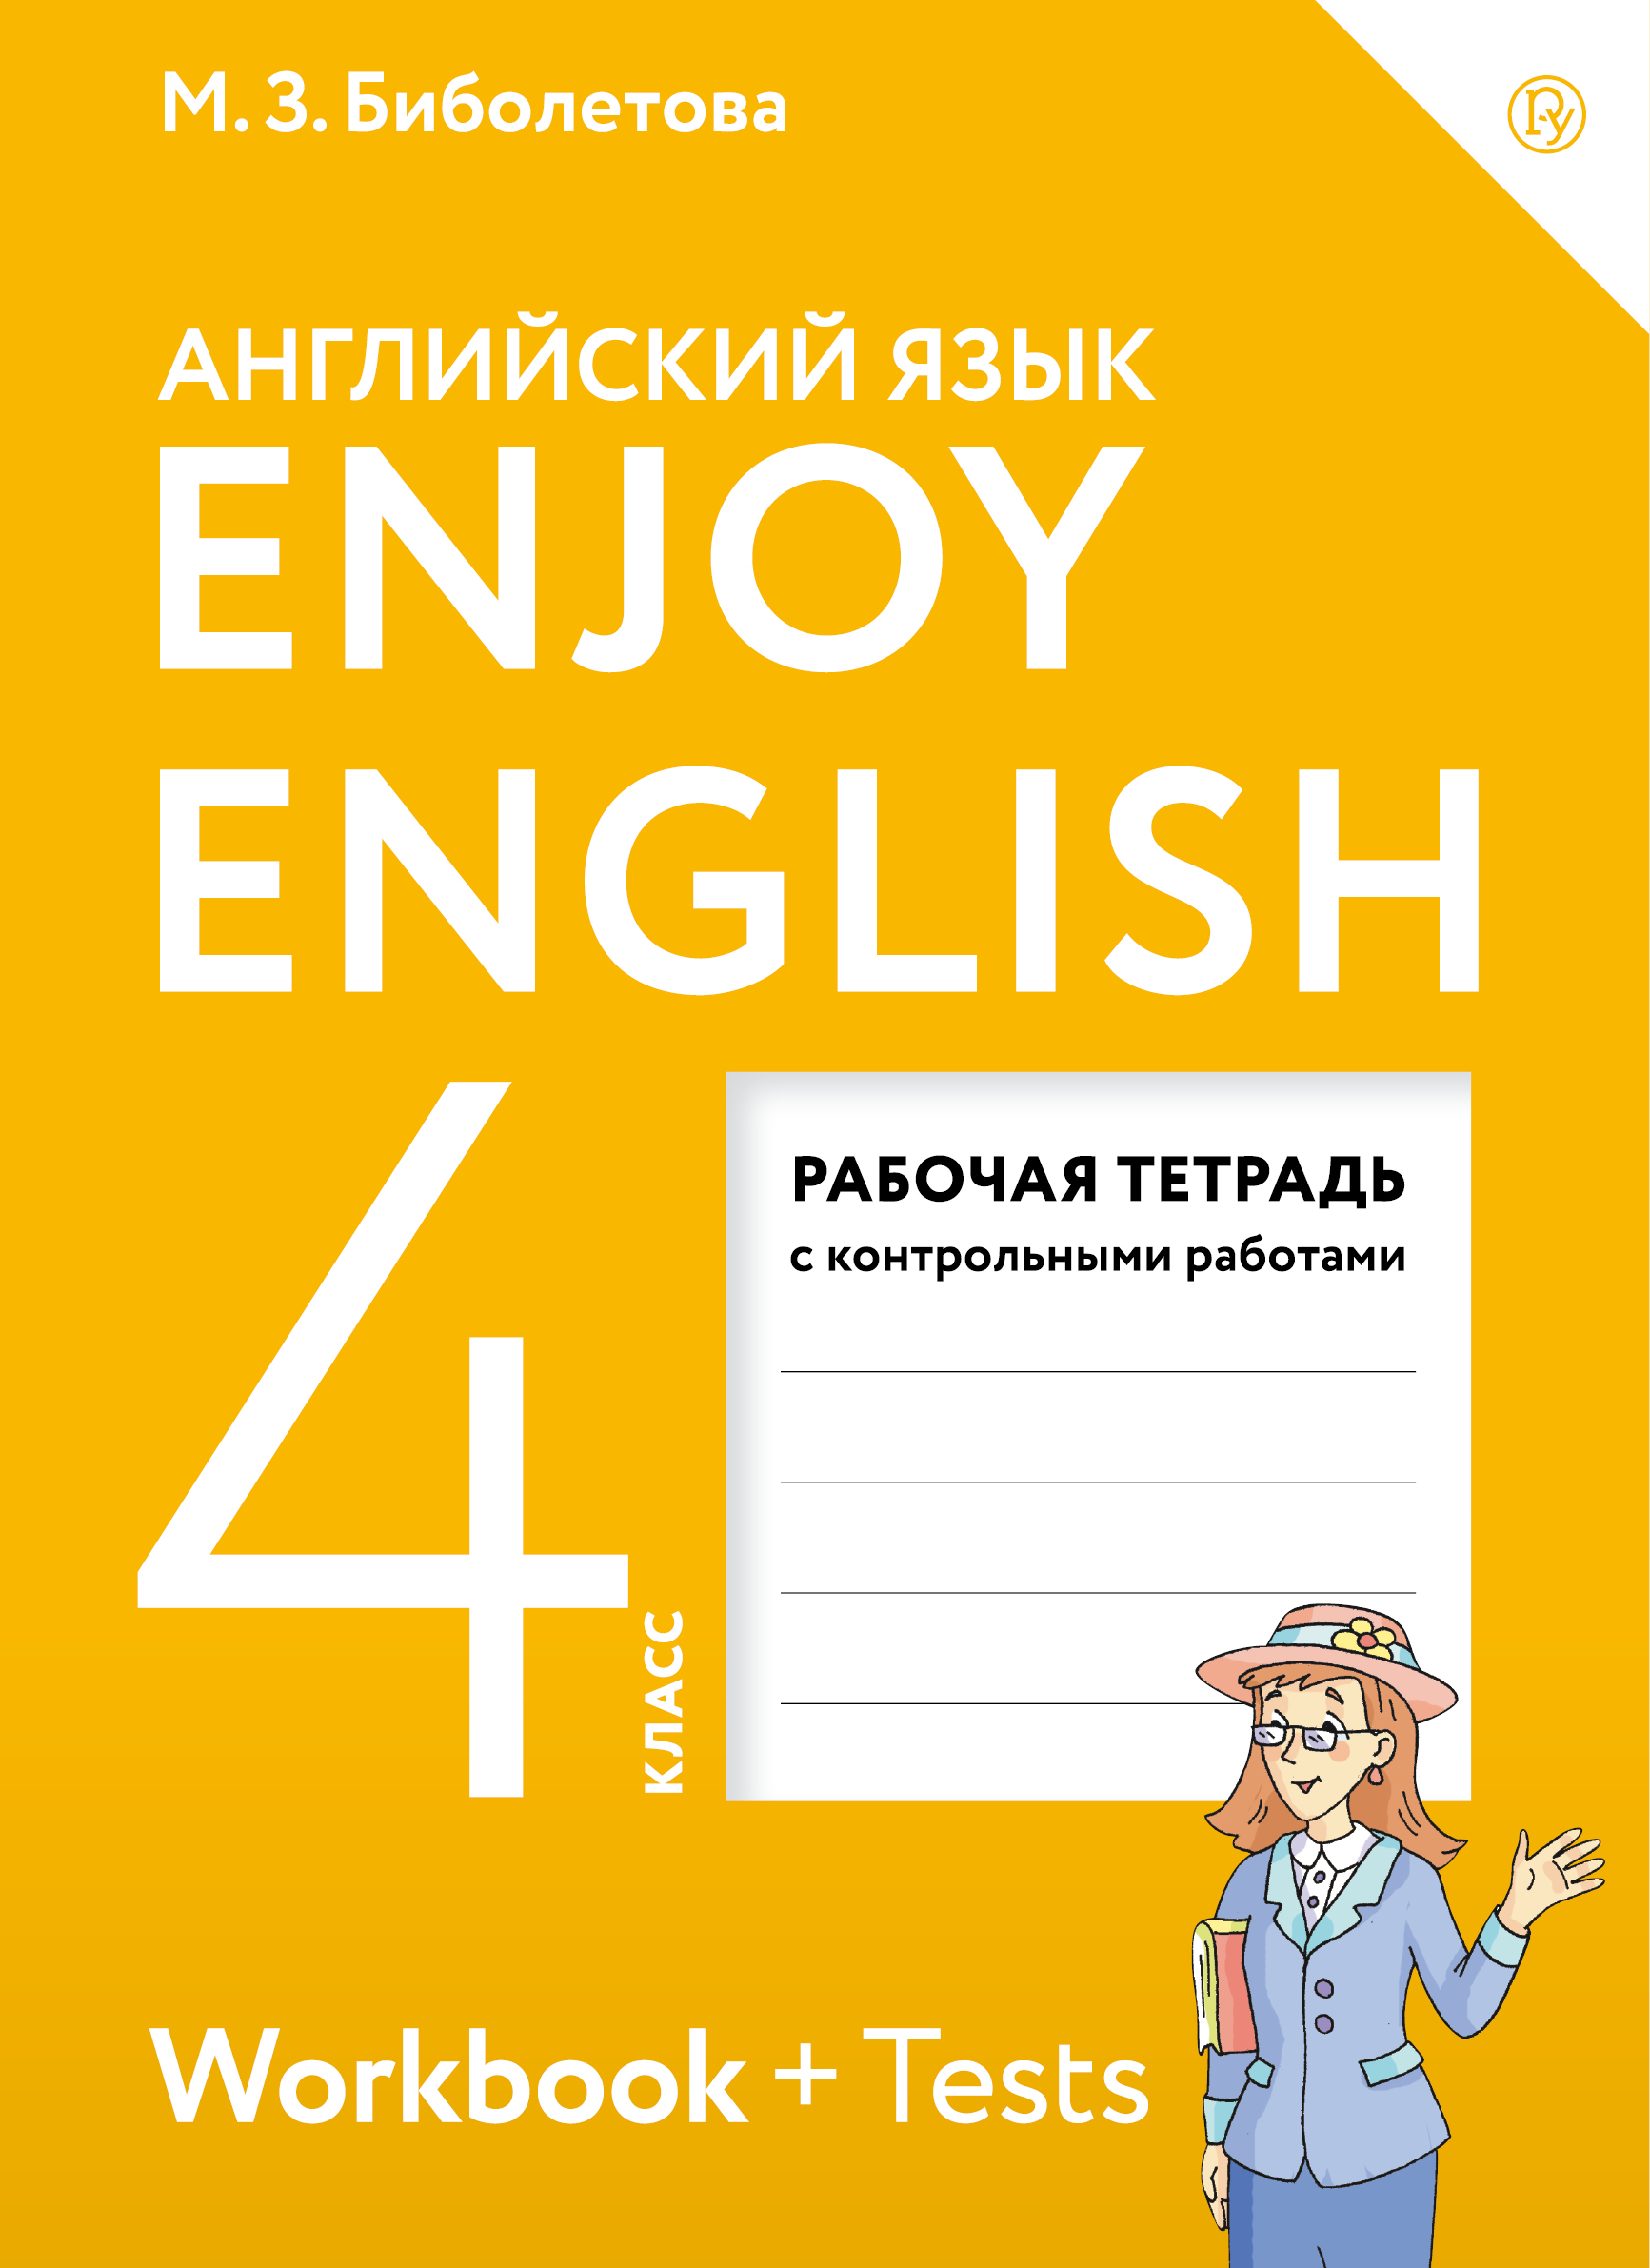 Книга для чтения enjoy english 5 класс гдз о.ф.денисенко